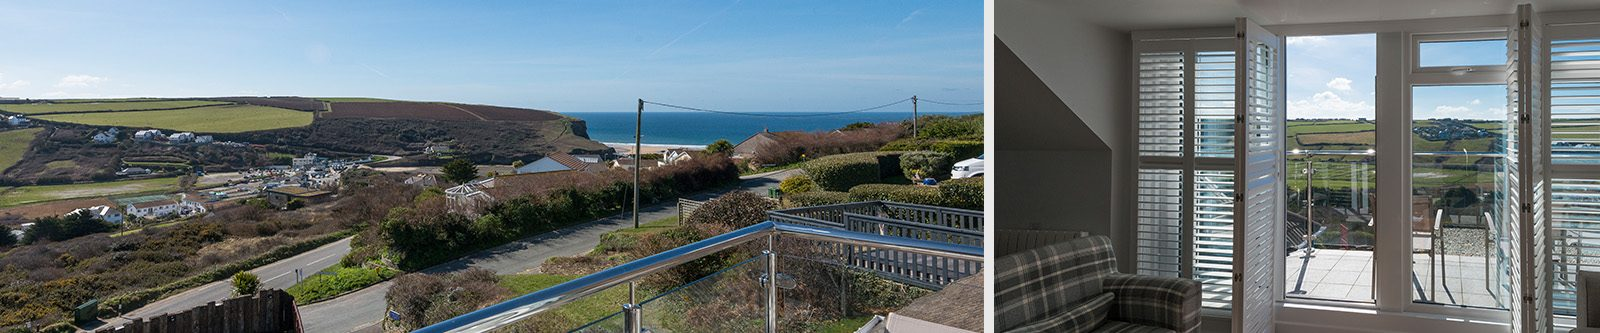 mawgan porth views